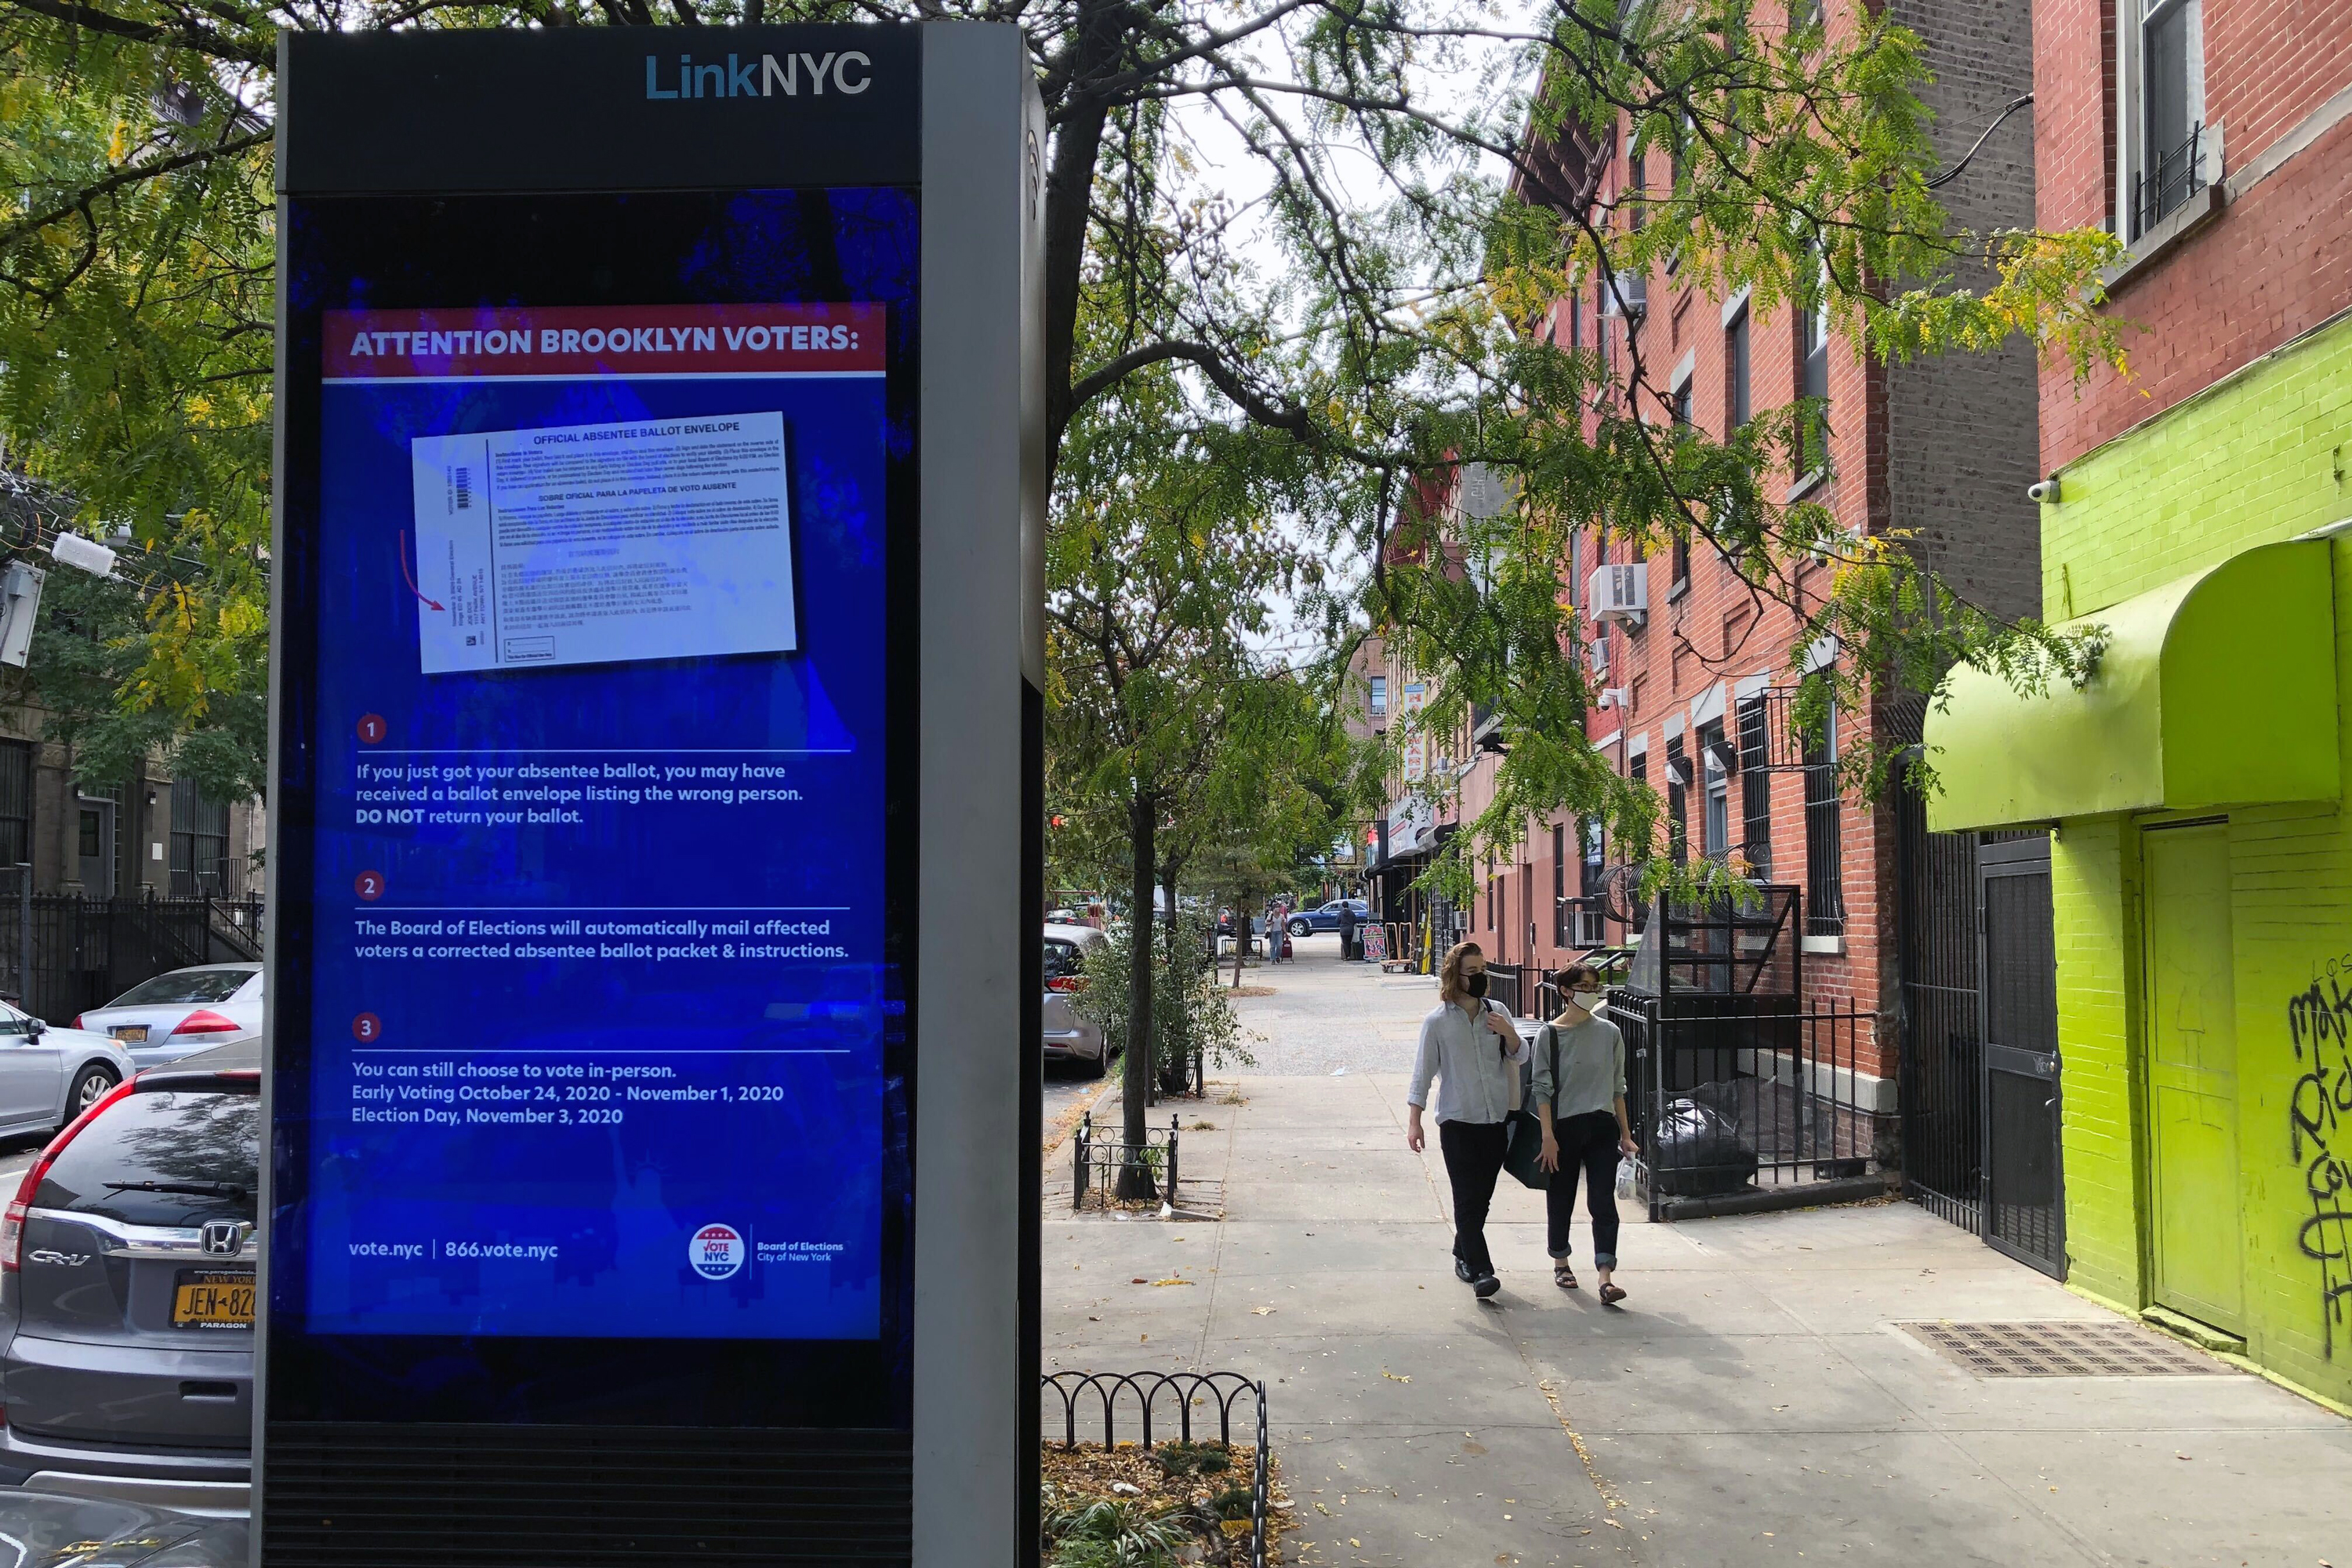 An ad on a LinkNYC kiosk in Crown Heights warns Brooklyn voters about faulty absentee ballots.